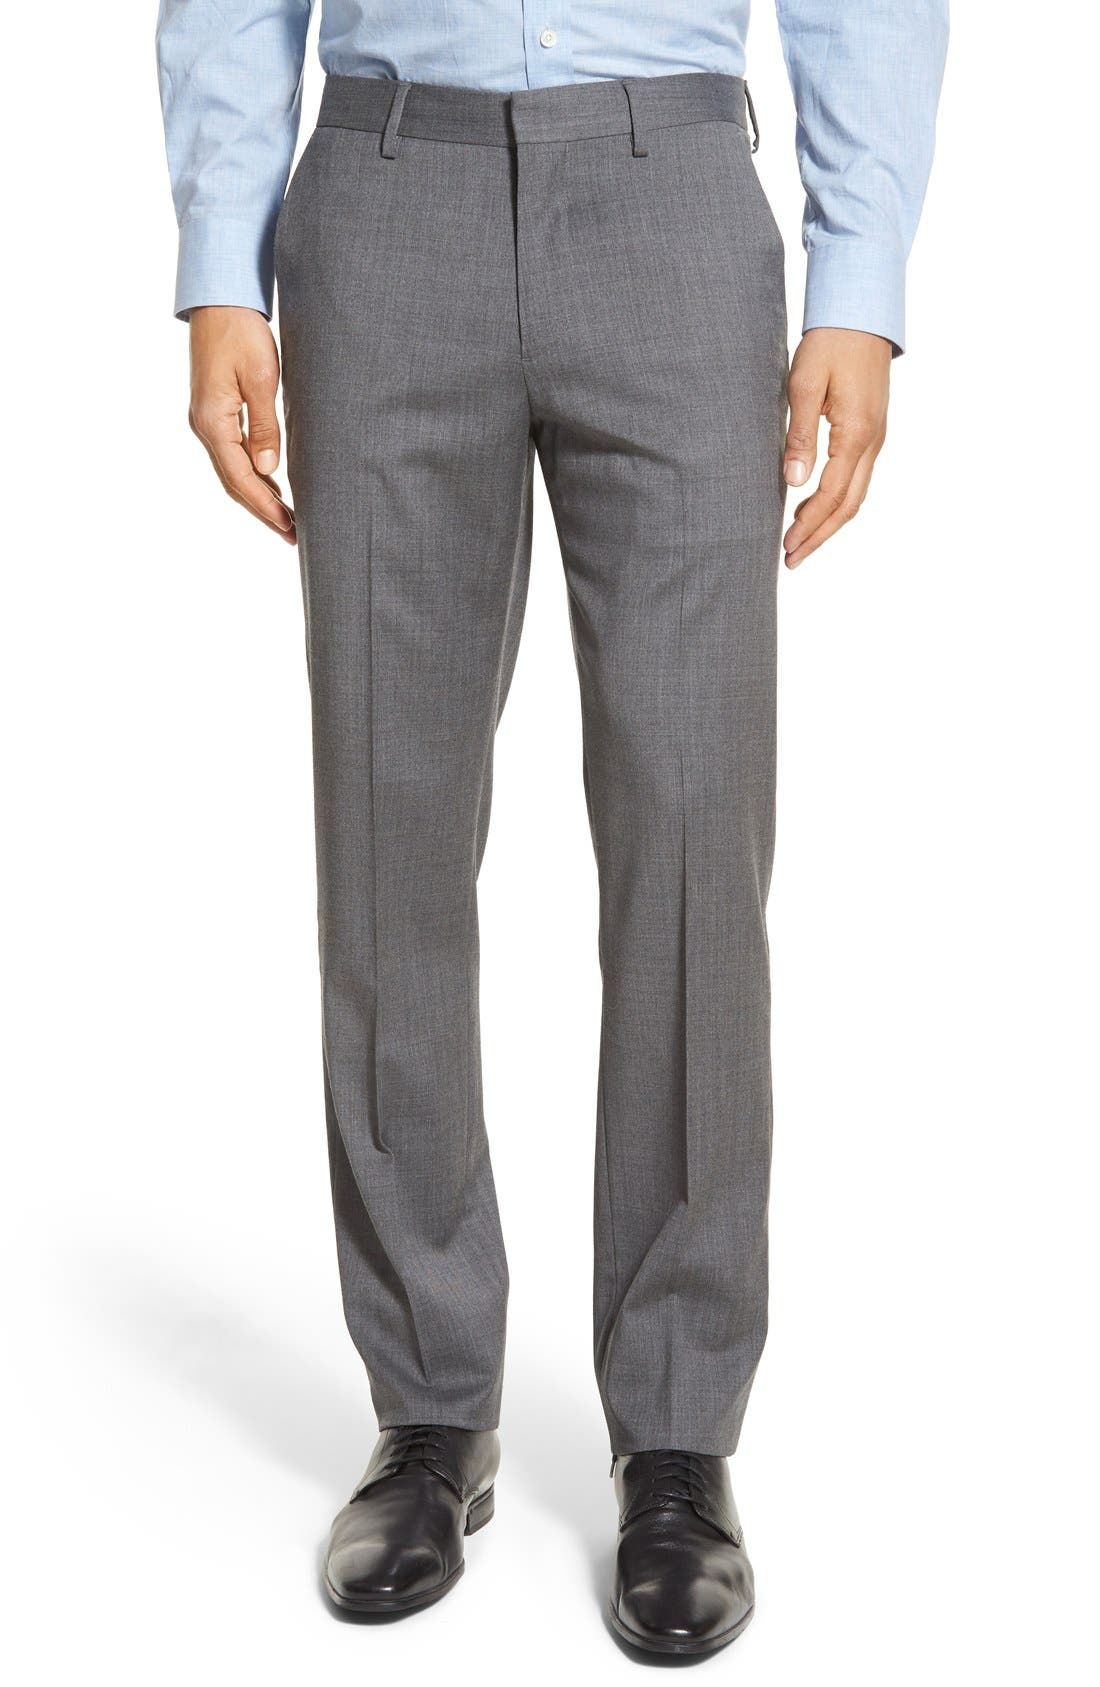 Alternate Image 1 Selected - Bonobos Jetsetter Slim Fit Flat Front Solid Stretch Wool Trousers